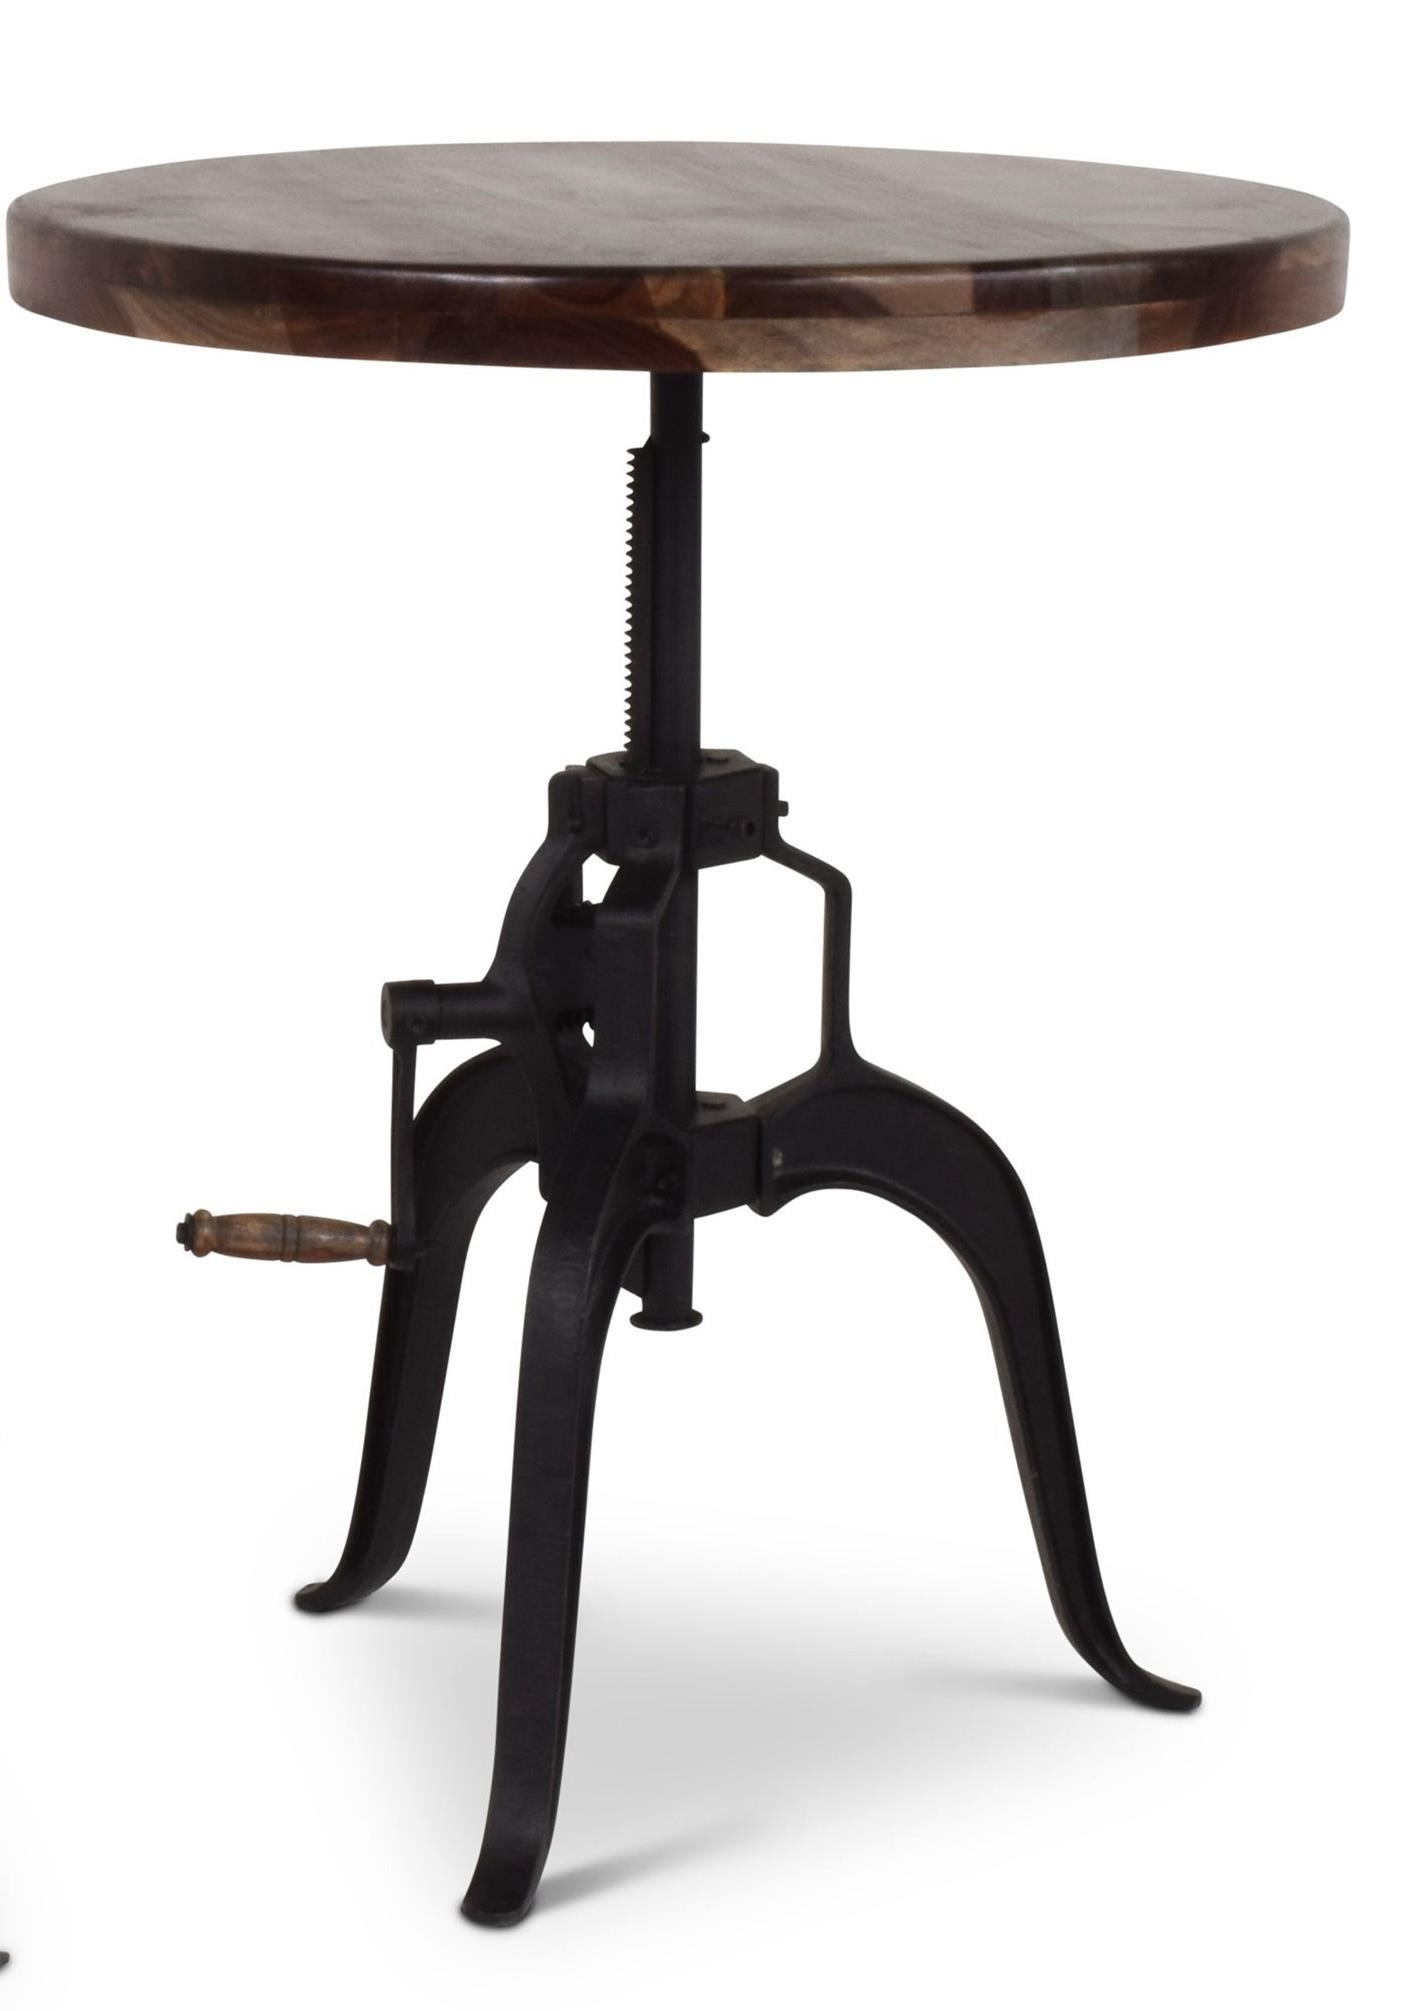 Sparrow Adjustable Round Table by Steve Silver at Walker's Furniture